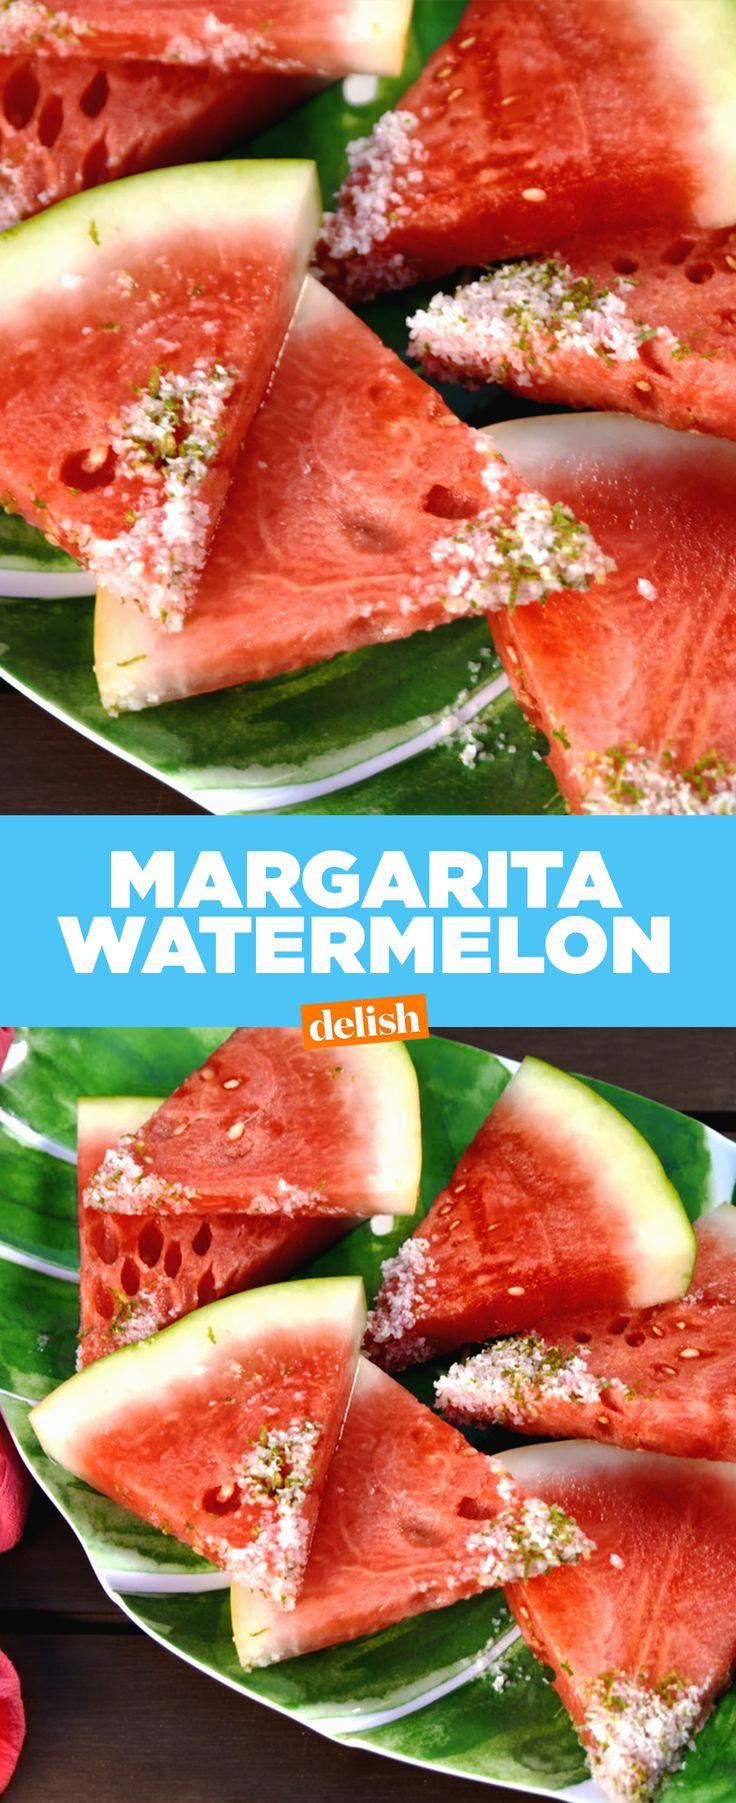 WARNING: Please snack on this Margarita Watermelon responsibly. Get the recipe from Delish.com.